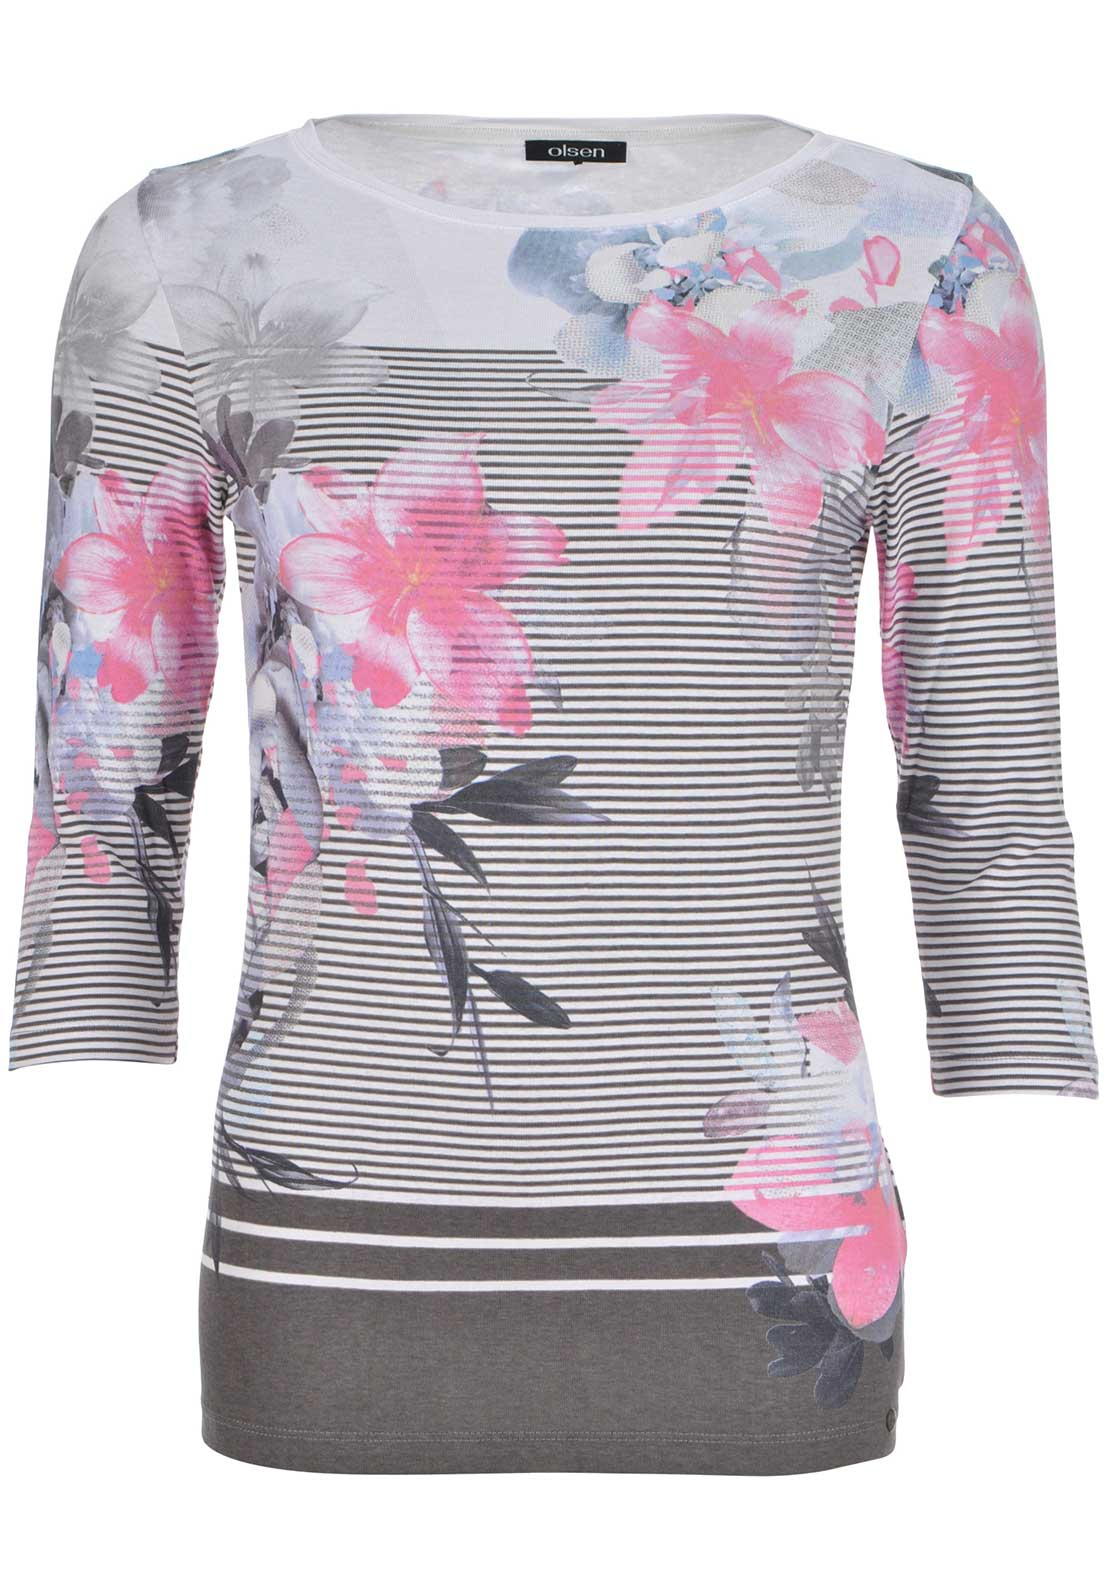 Olsen Floral and Striped Print Cropped Sleeve Top, Multi-Coloured